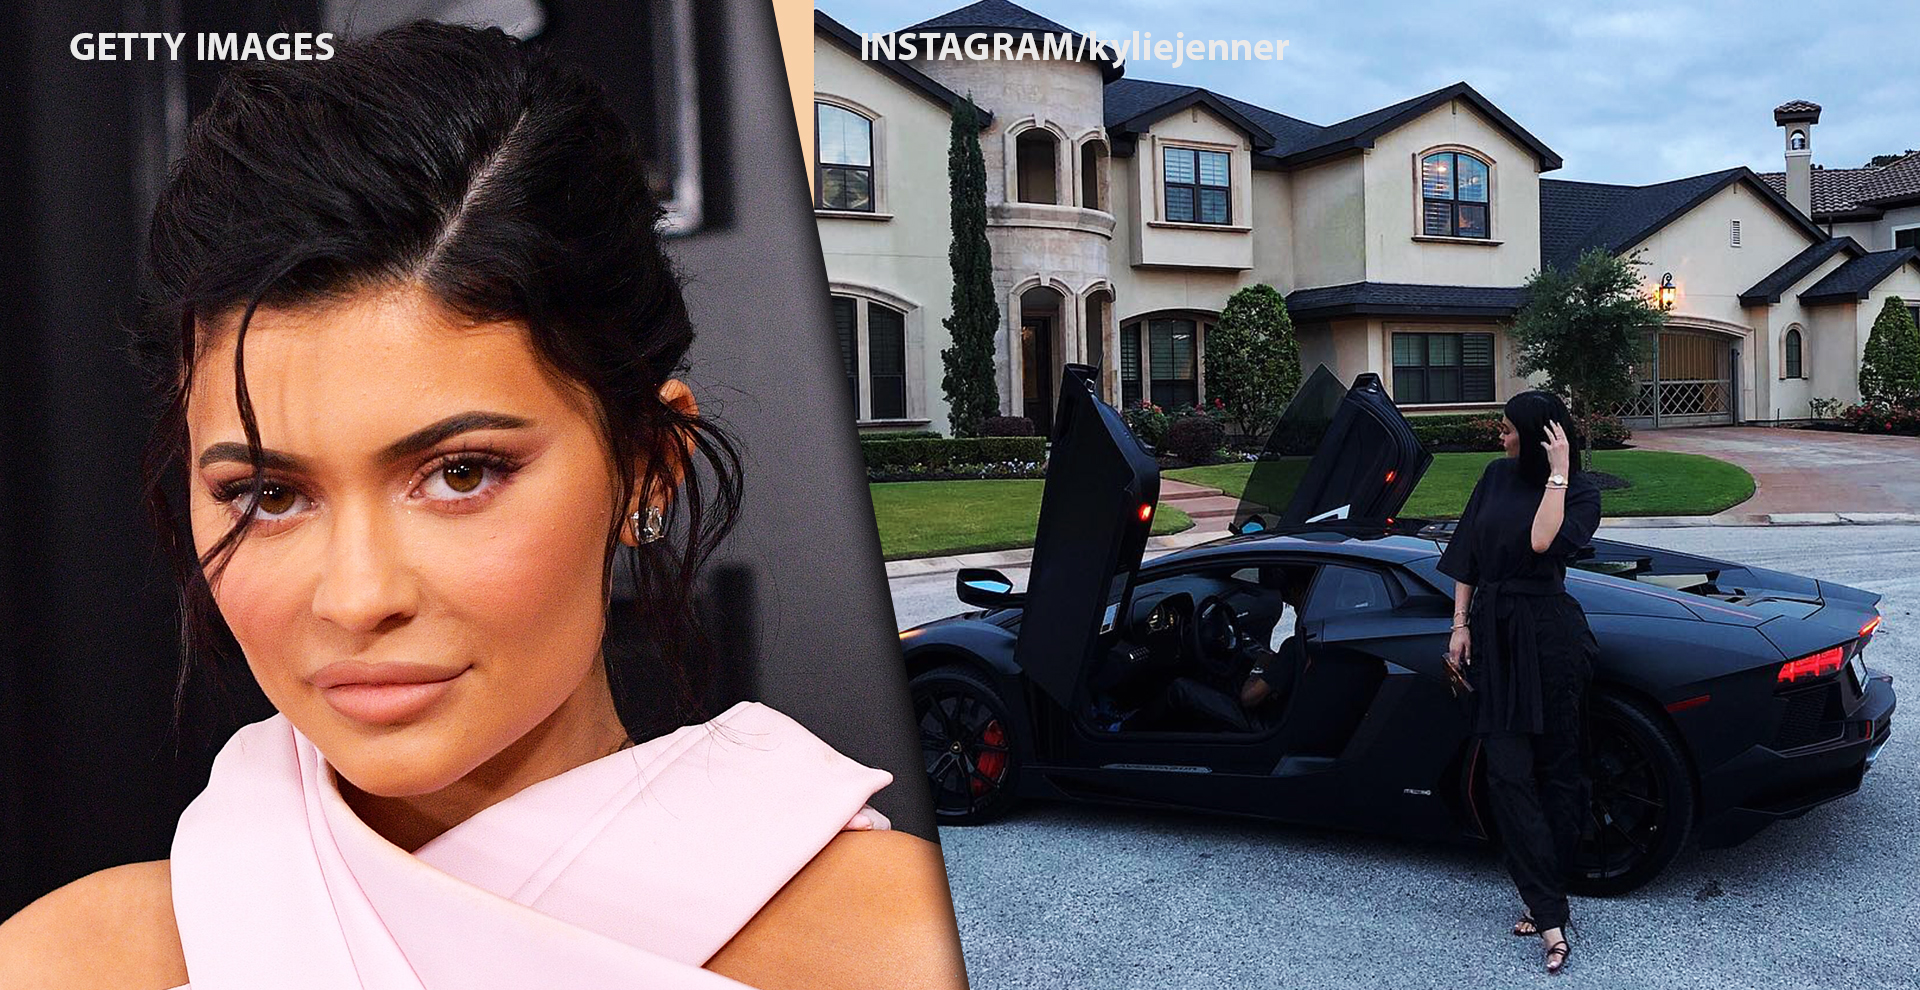 Kylie Jenner: The Youngest Sister That Became The Richest